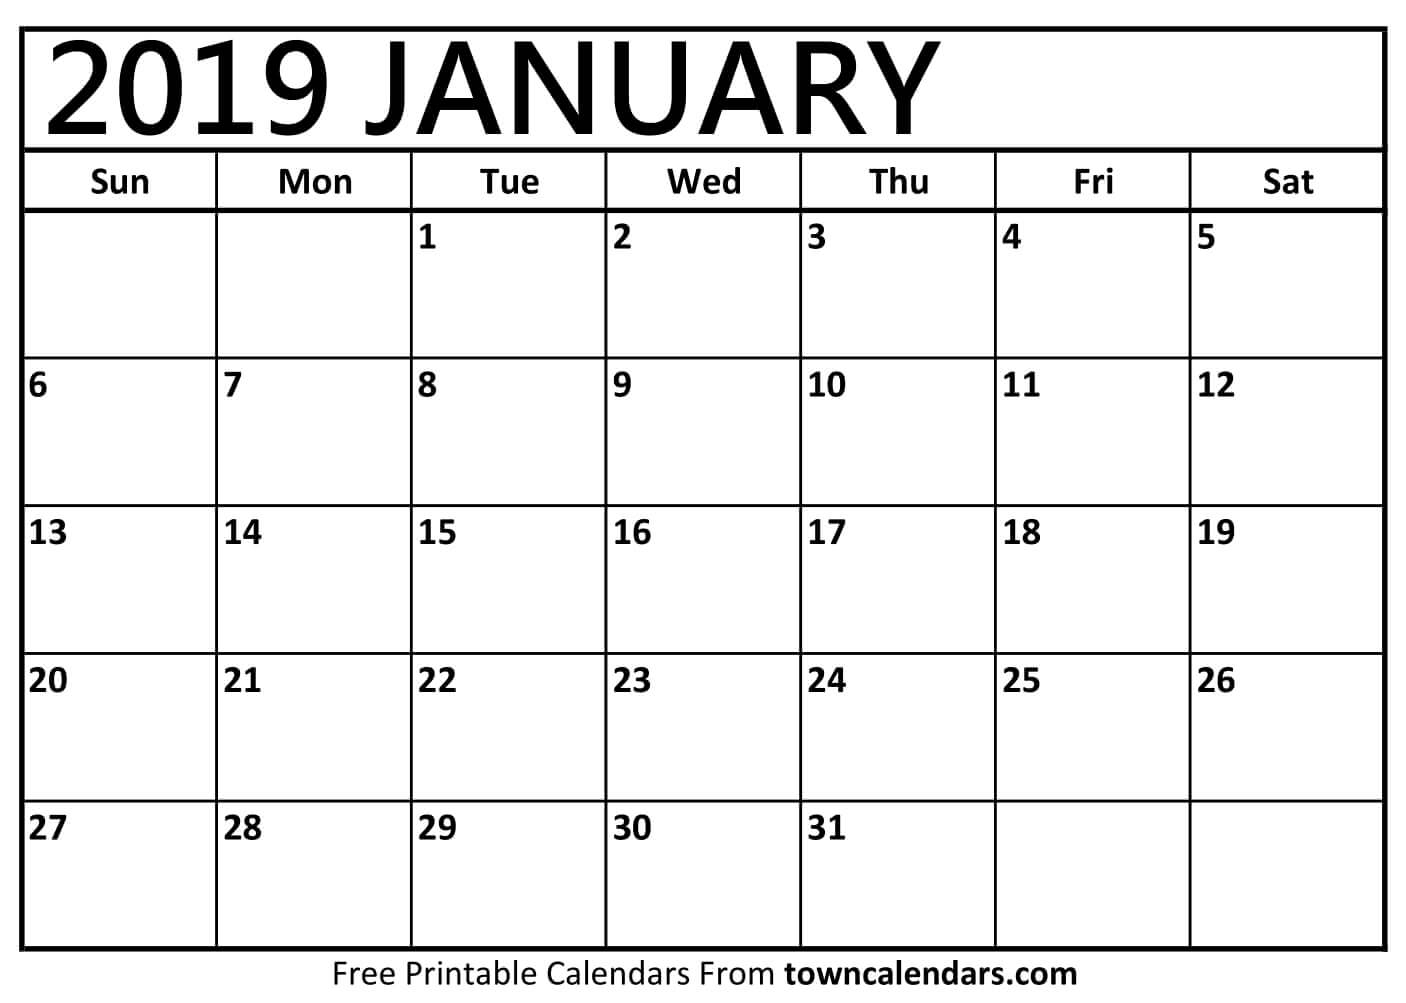 January 2019 Printable Calendar Pdf Free Monthly Template